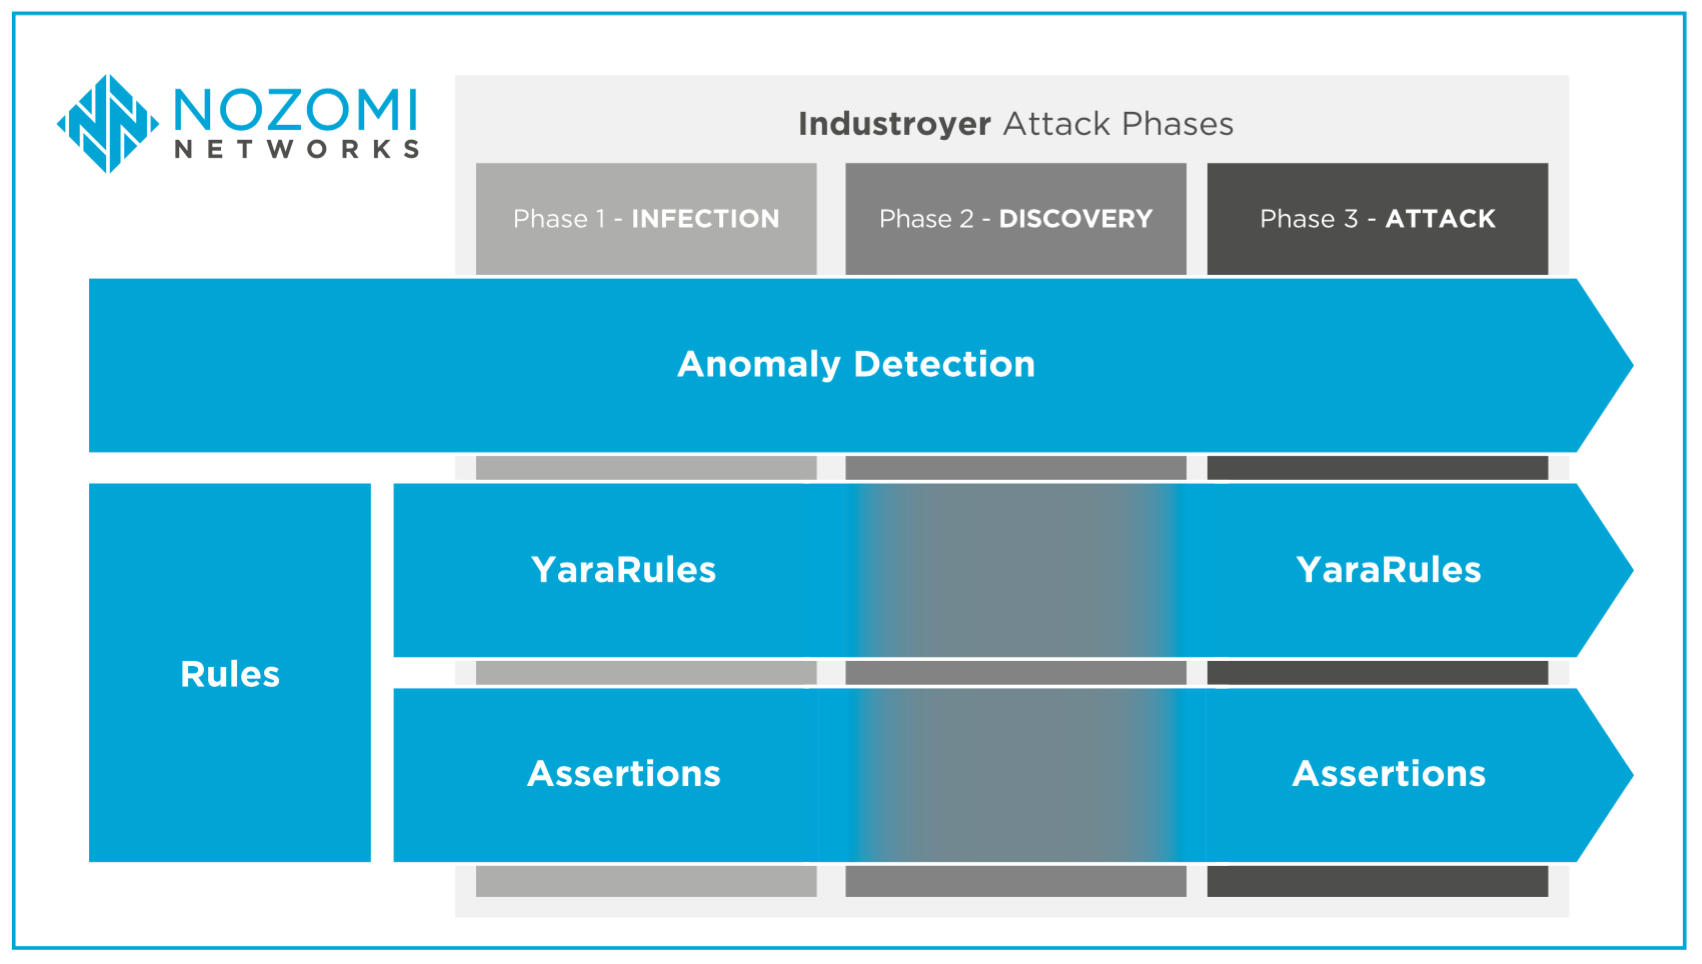 Nozomi-Networks-Industroyer-Intrusion-Detection-Capabilities